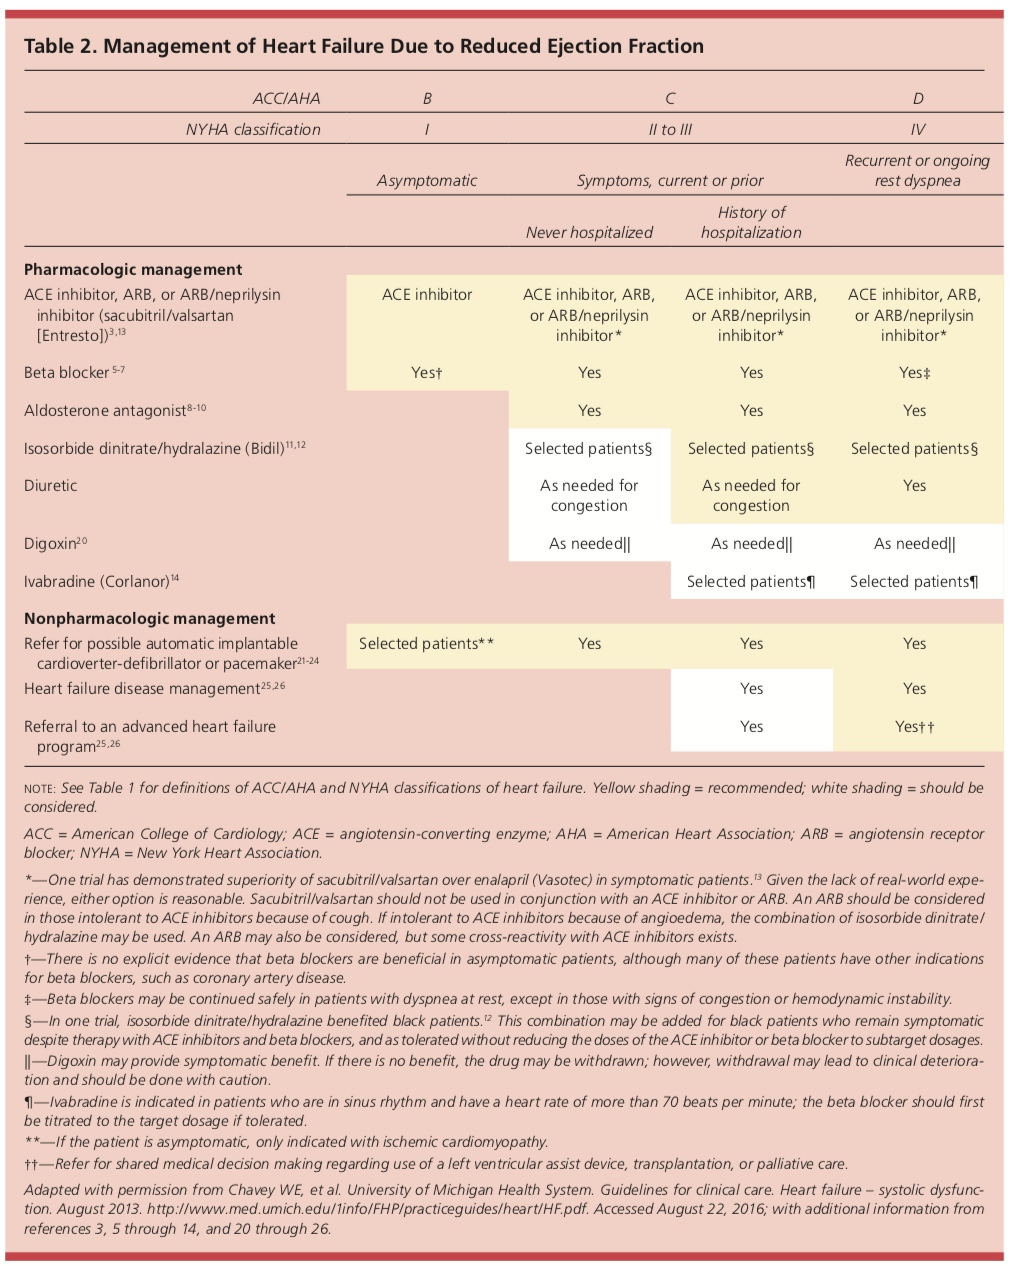 management of heart failure with reduced ejection fraction